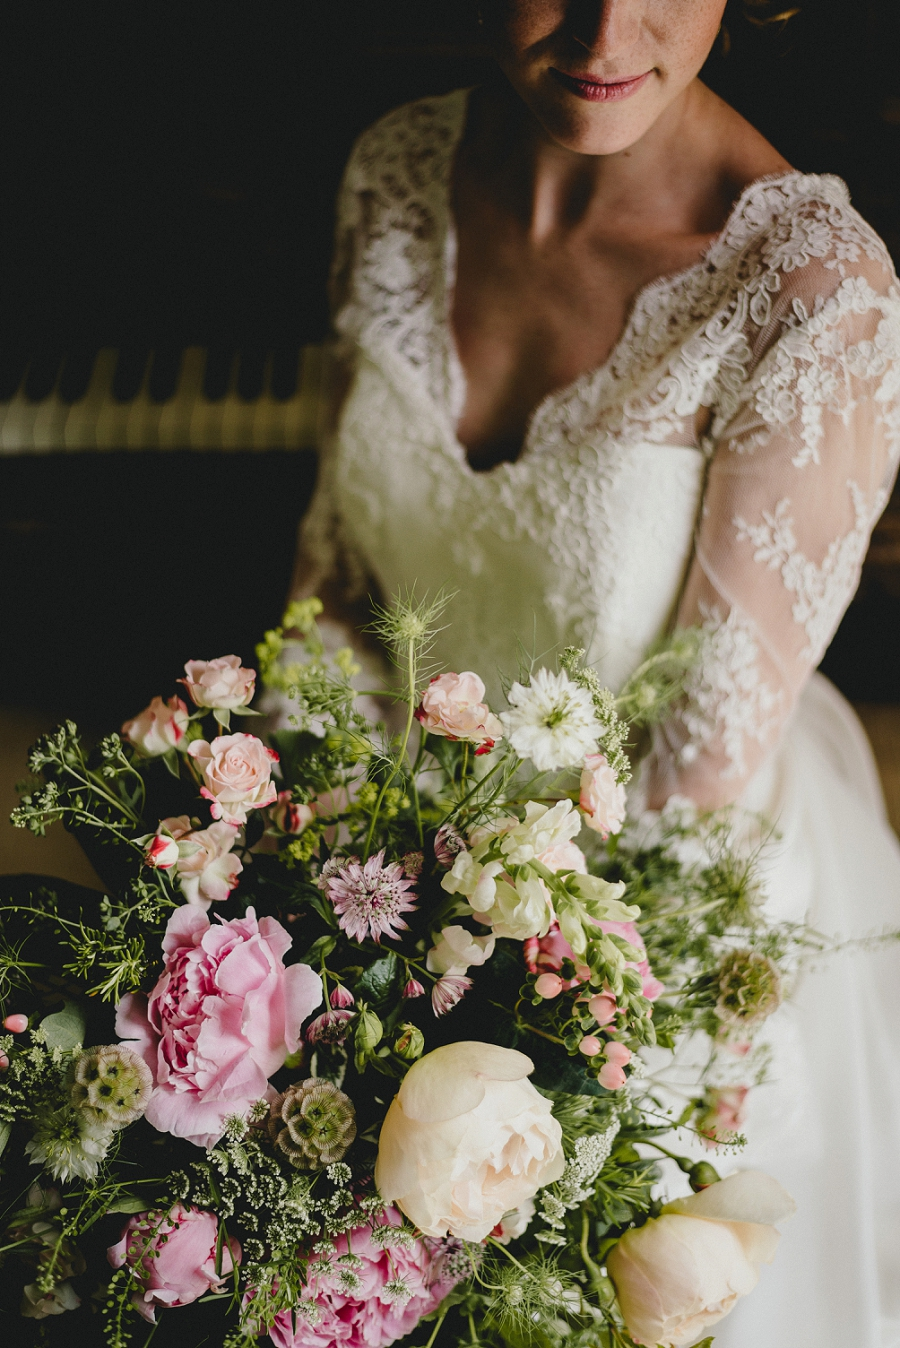 Heirloom wedding inspiration with Emily Andrews Events at Thurning Hall. Photo credit Benjamin Mathers Photography (6)